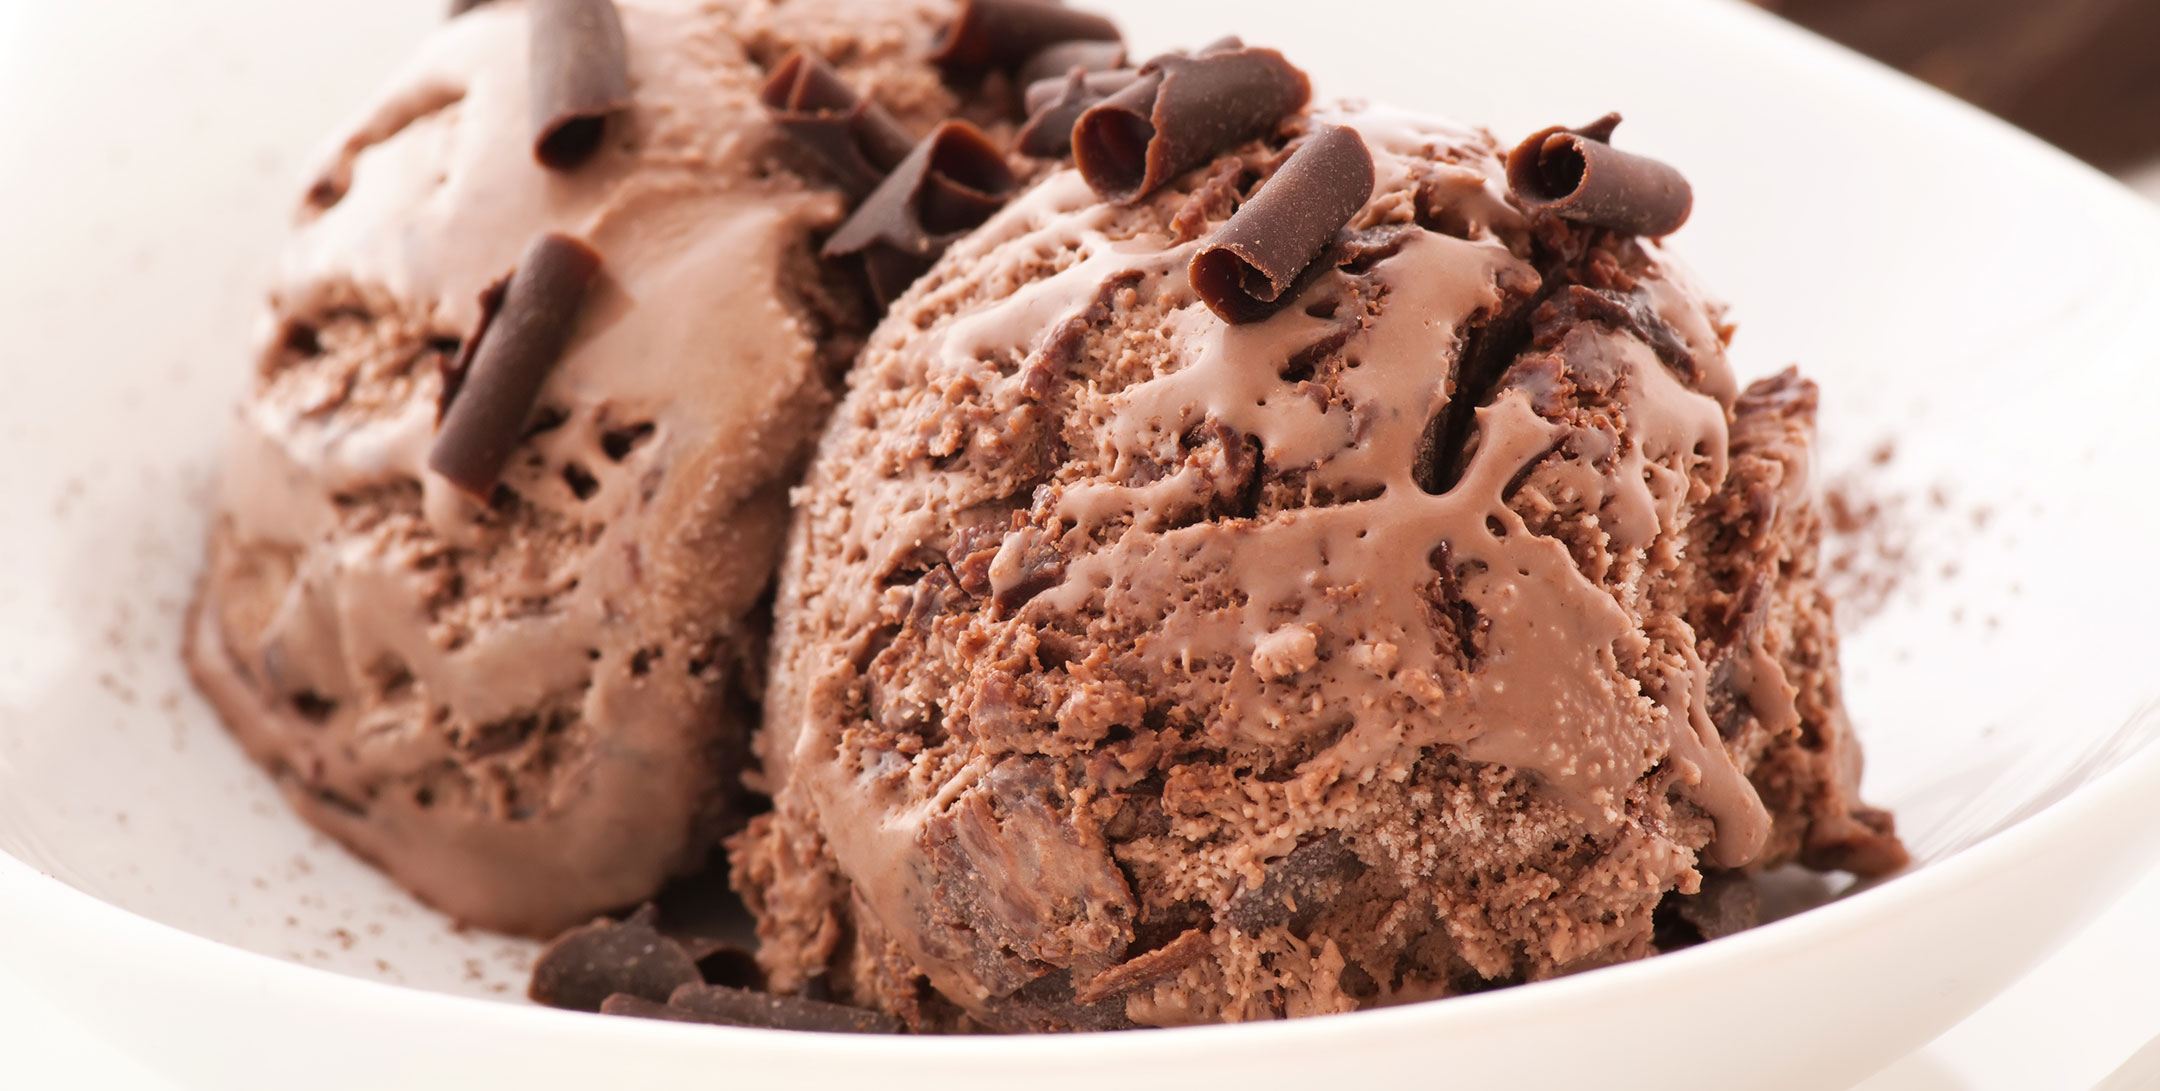 Chocolaty Chocolate Ice Cream